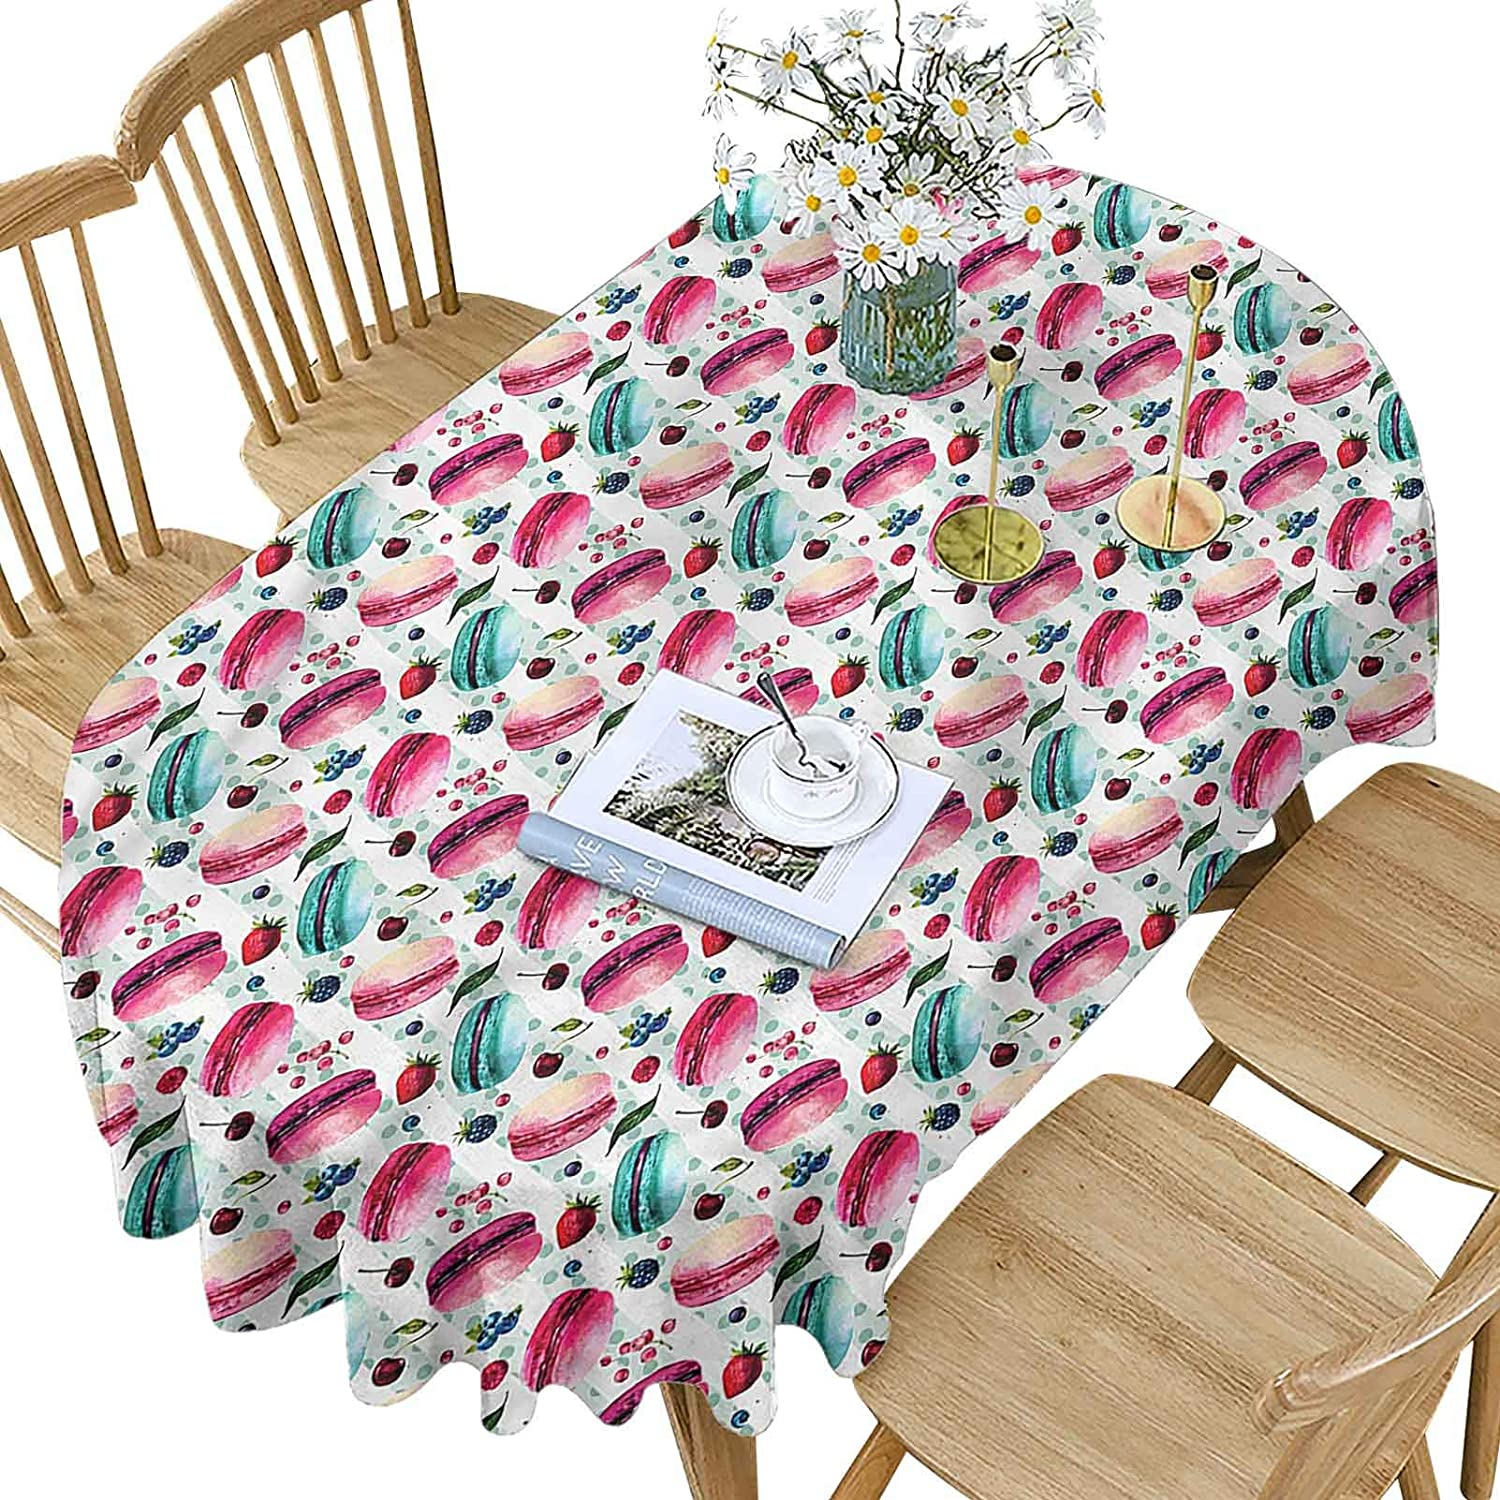 Kitchen Polyester Oval Tablecloth High quality Pattern Macarons Seasonal Wrap Introduction Berries Patte